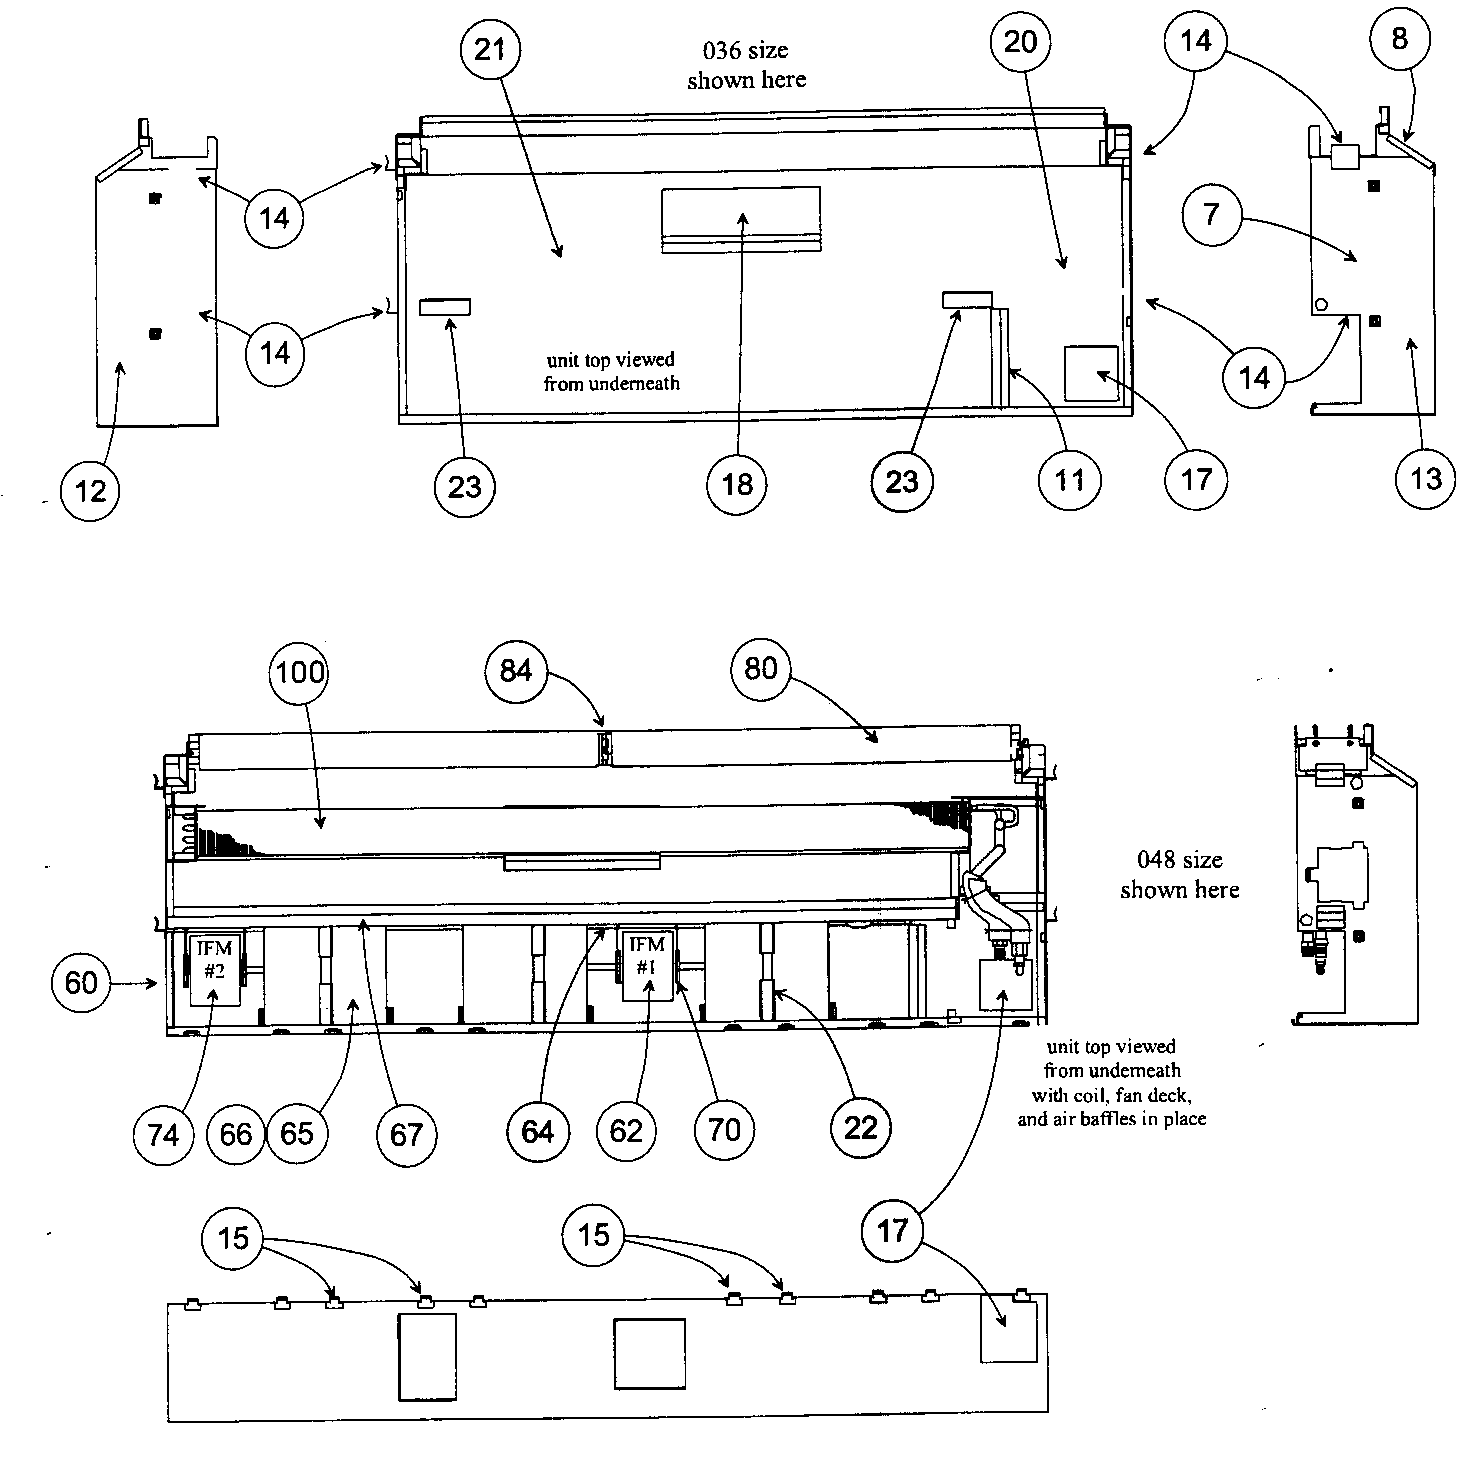 hight resolution of carrier 40qaq048300 top view diagram